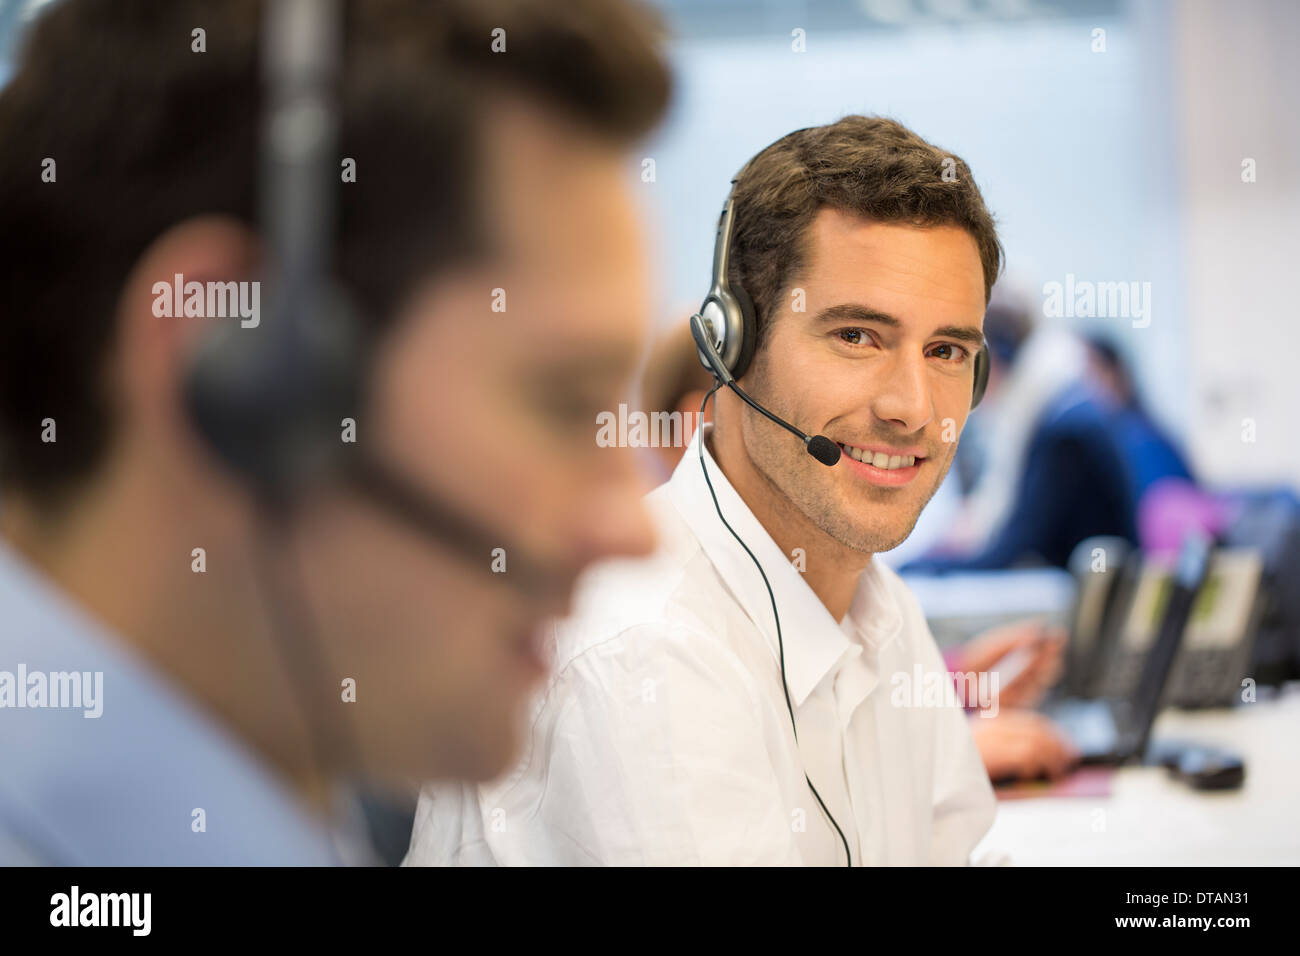 Portrait of Businessman in office on phone with headset, looking camera - Stock Image